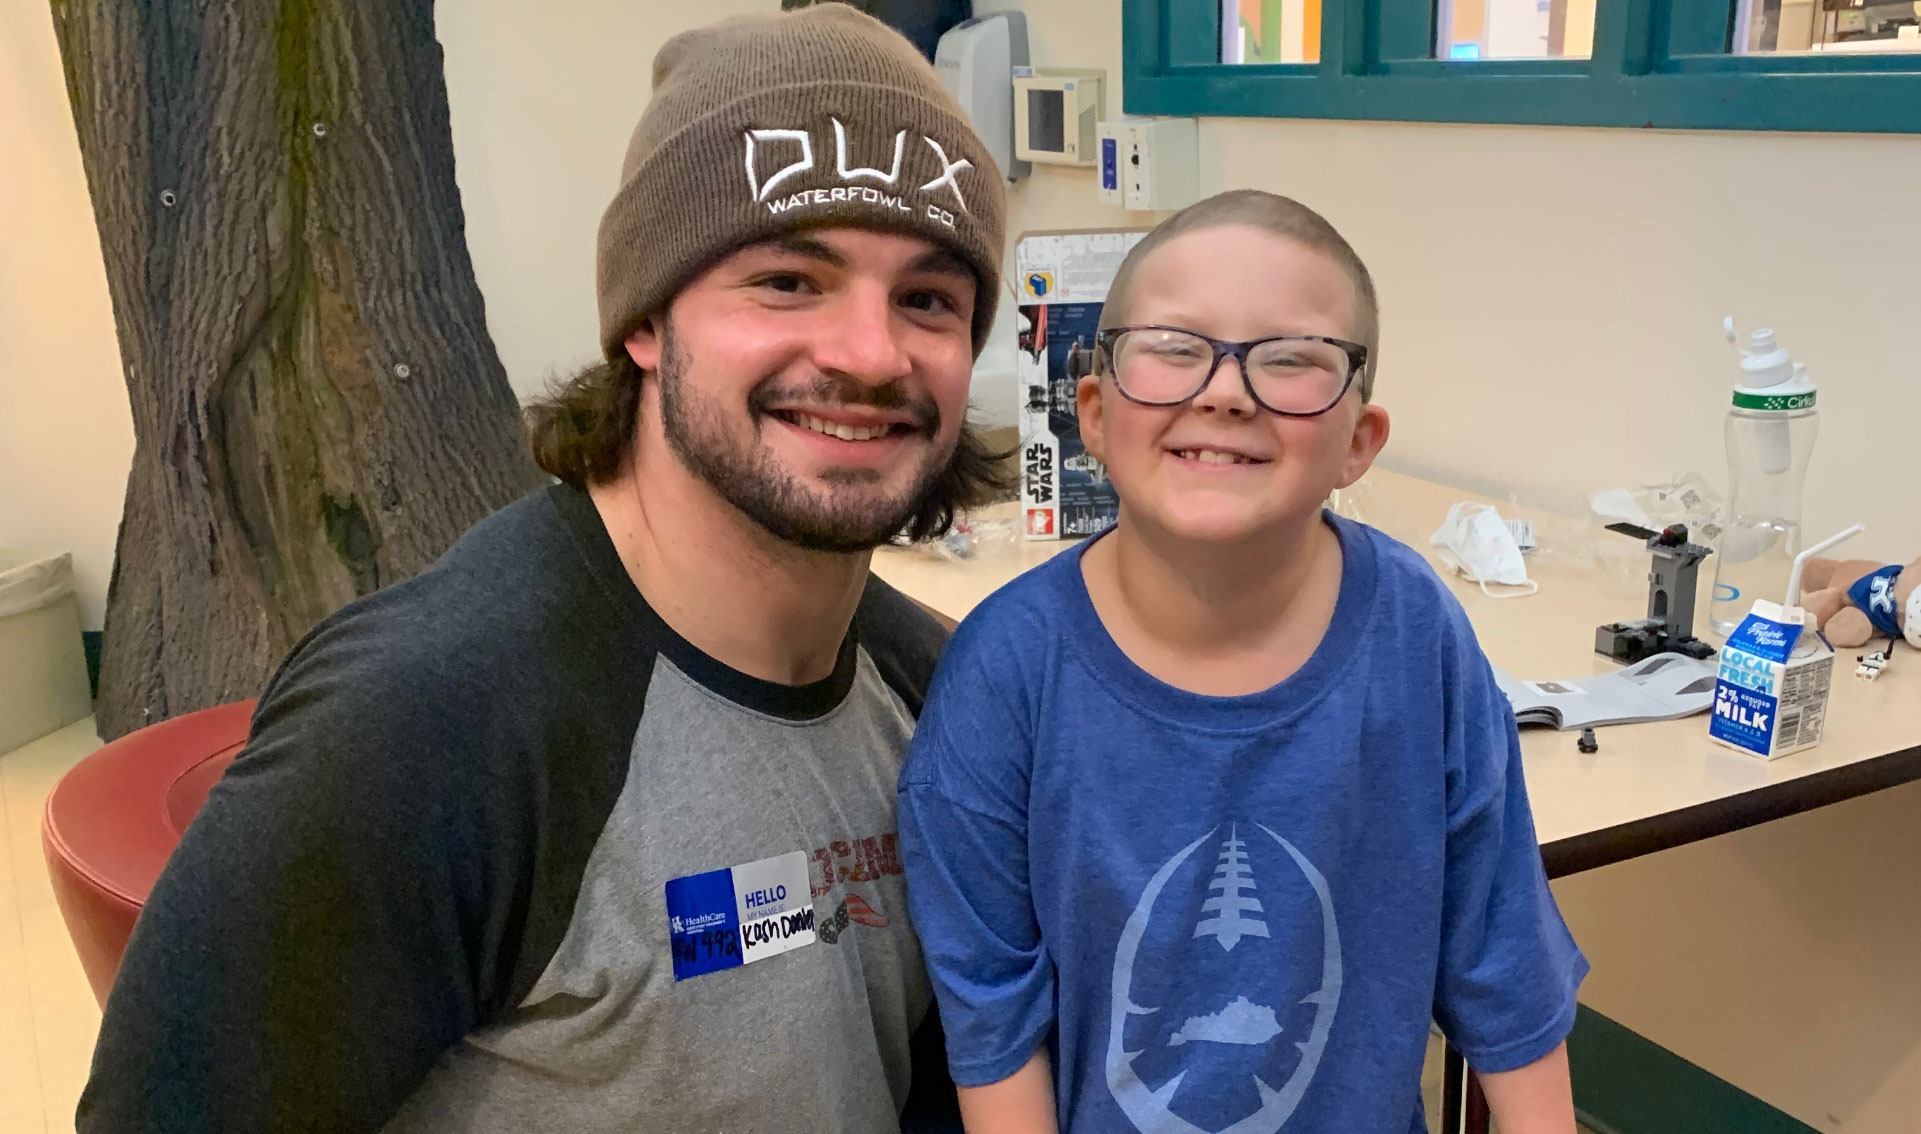 Ellie and Kash Daniel, a young man with an athletic build, brown hair, and a beard wearing a brown beanie and a gray and black t-shirt, sit together and smile for a picture.